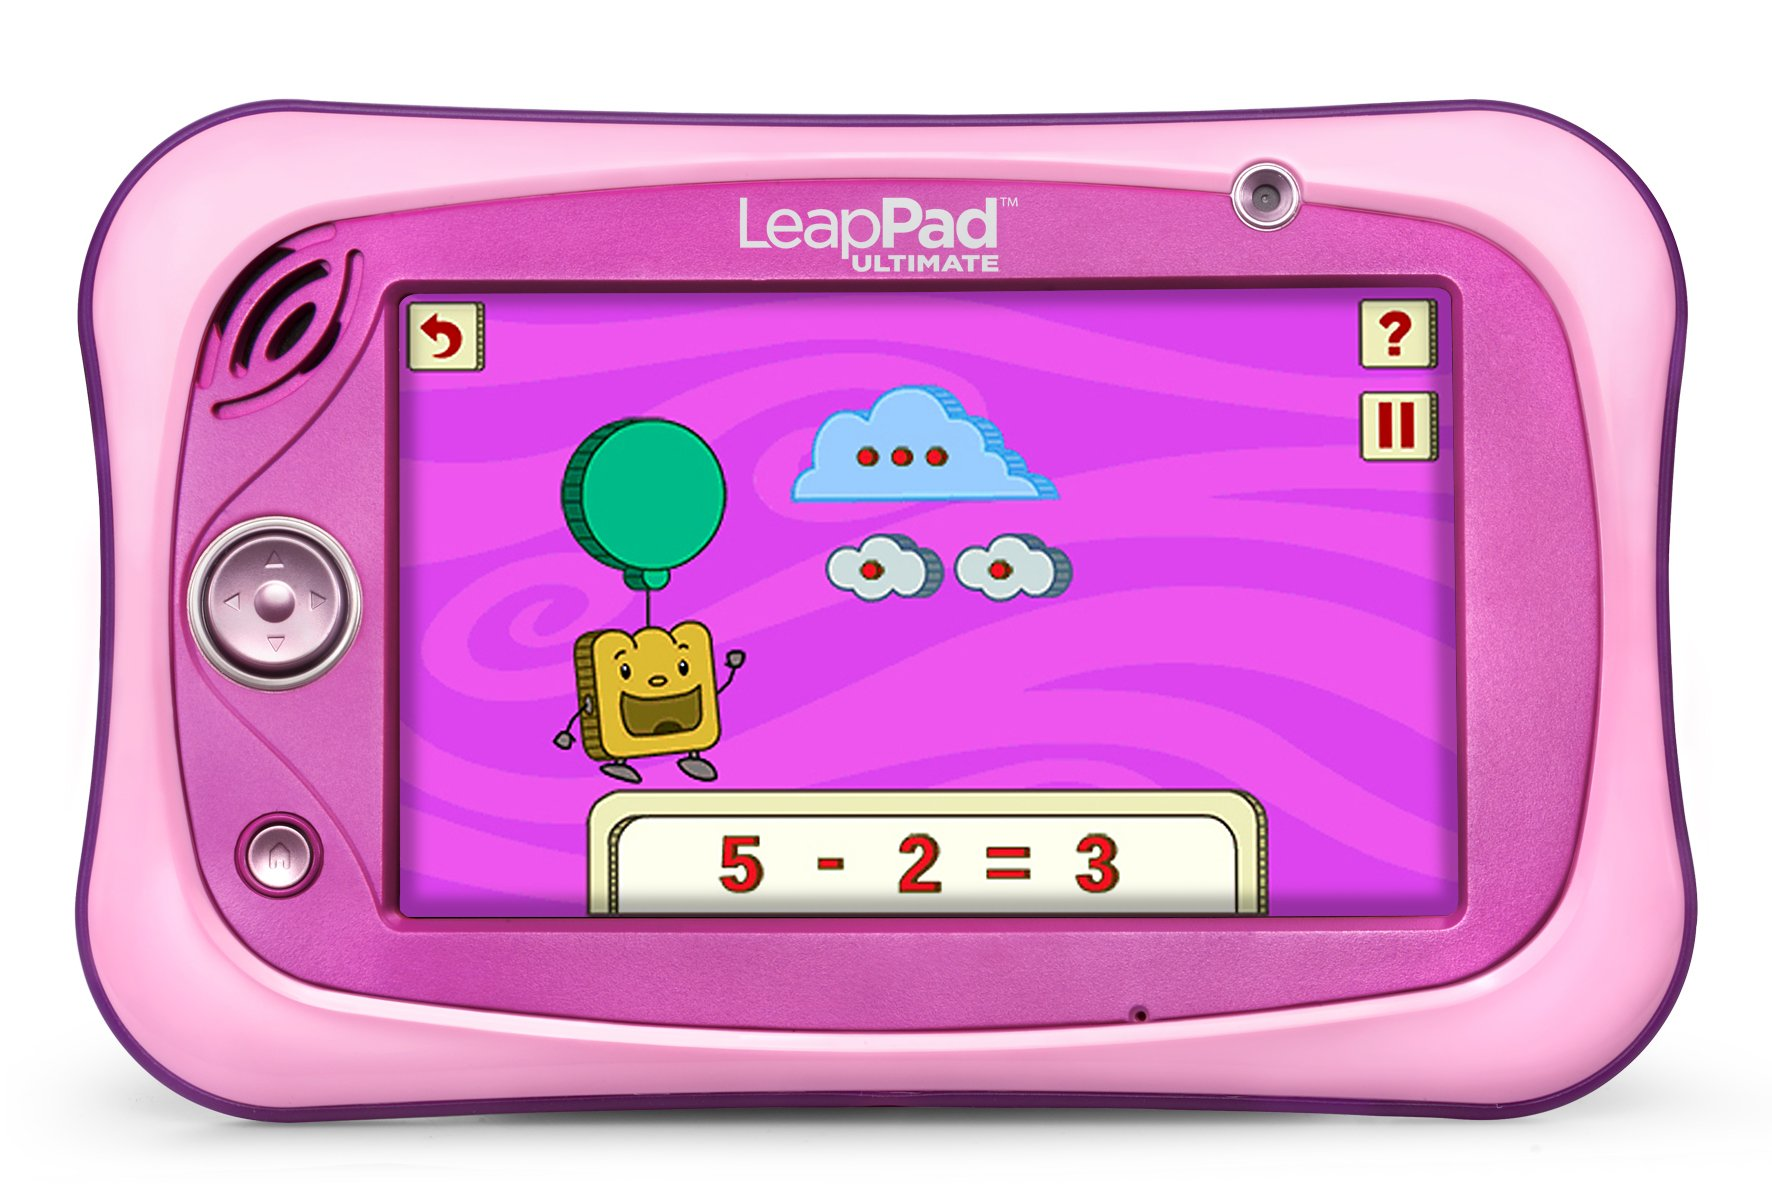 LeapFrog LeapPad Ultimate Ready for School Tablet, Pink by LeapFrog (Image #3)